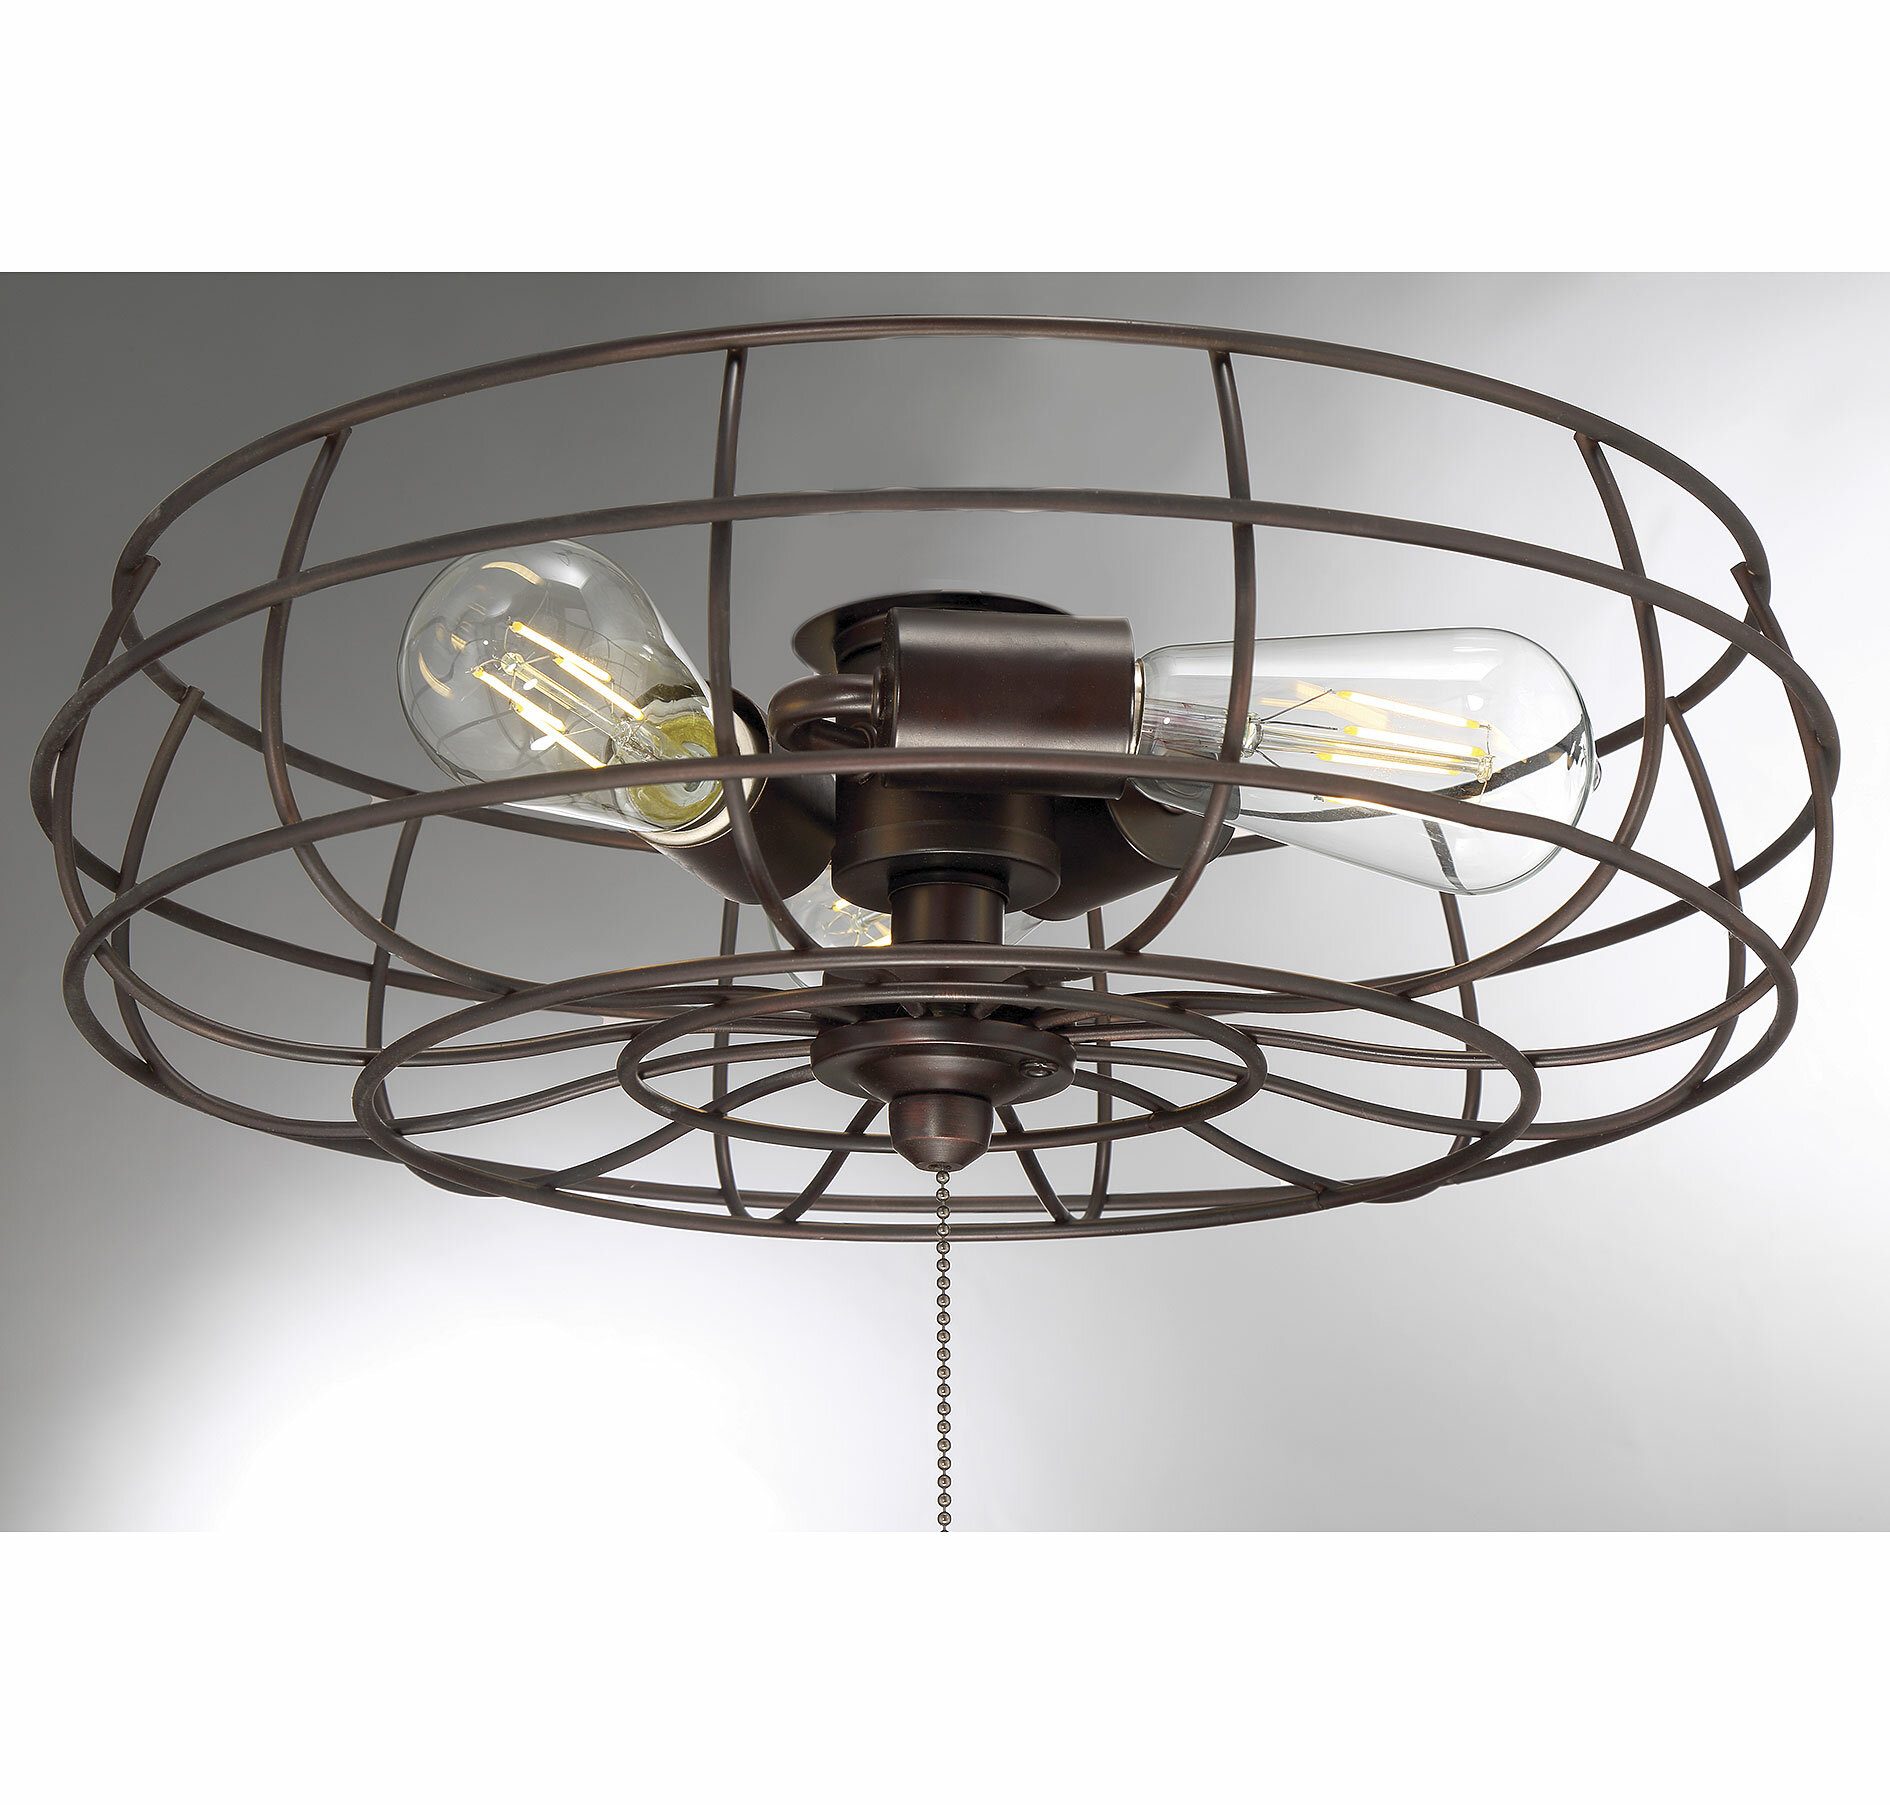 Three Posts 3 Light Ceiling Fan Branched Kit Reviews